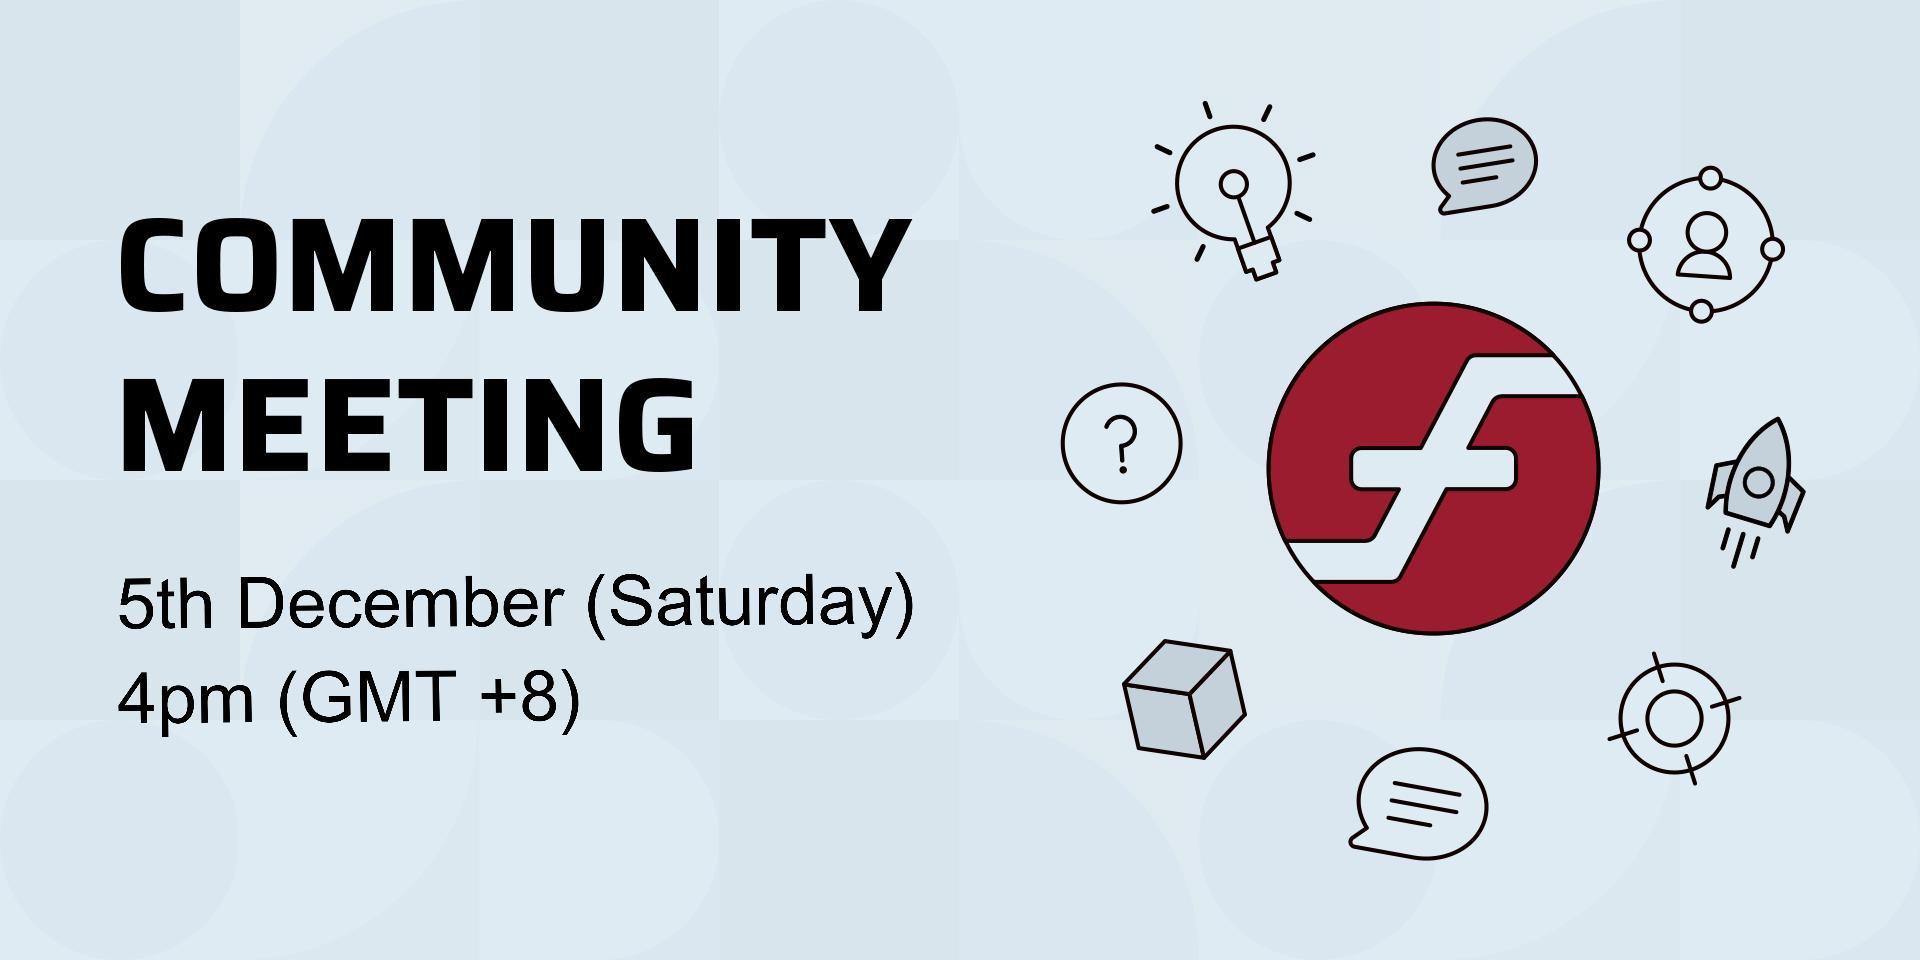 Join us at our first Community Meeting as Firo!